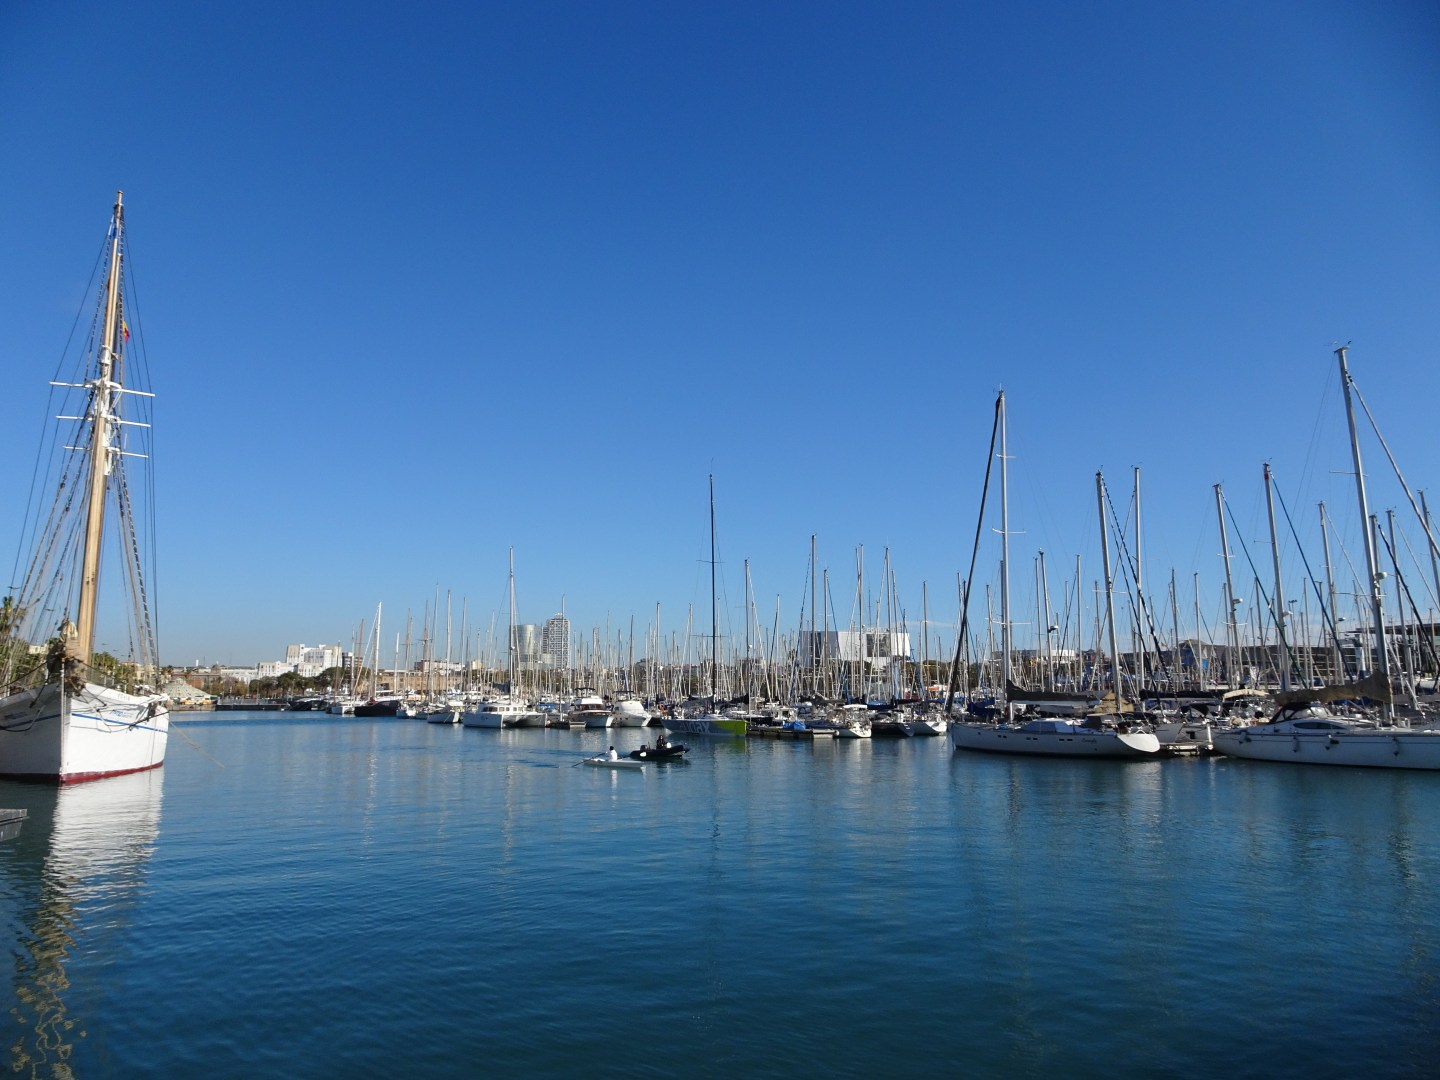 A weekend in Barcelona - Port Vell